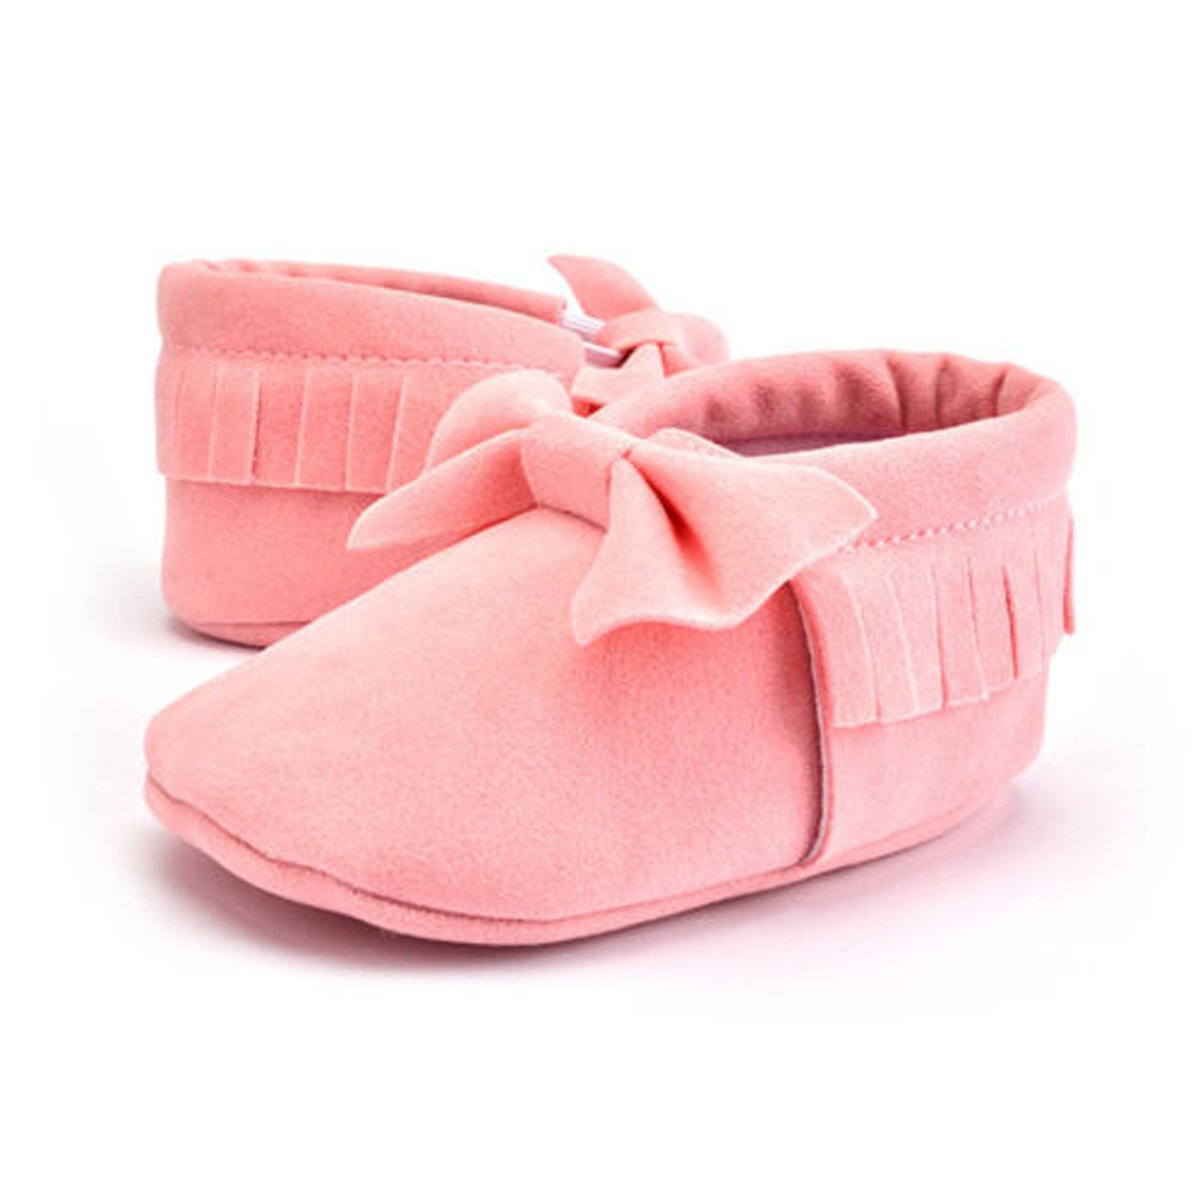 Newborn Girl First Soft Sole Toddler Baby Lace Frilly Bow Crib Shoes Pram 3-12M